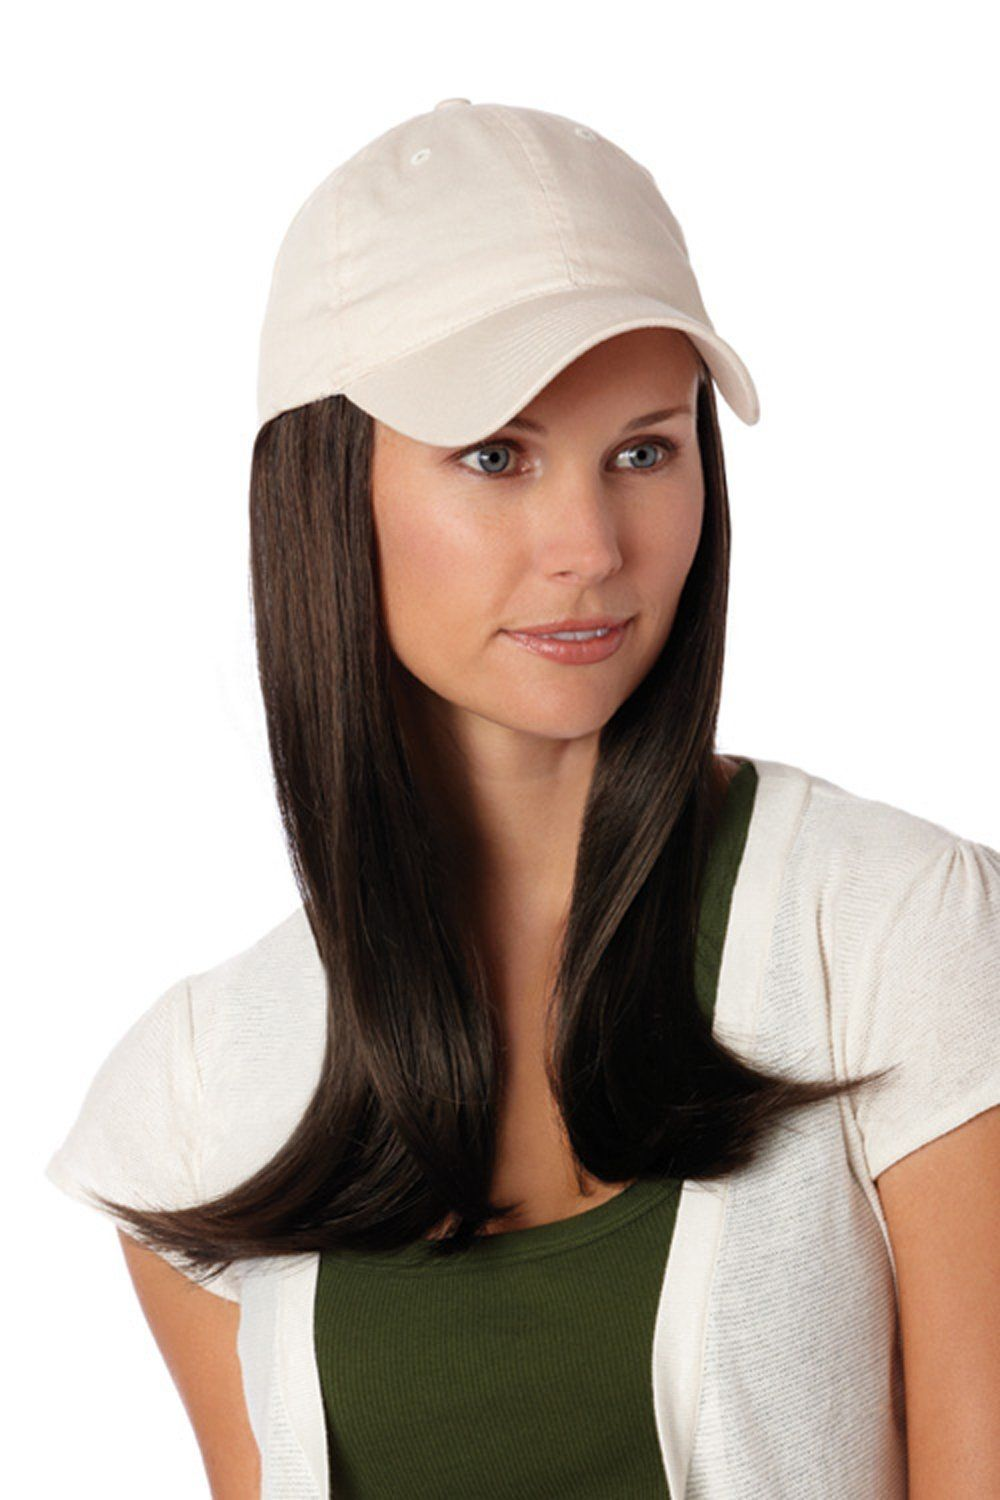 Henry Margu Hair Accents Long Hair With Beige Baseball Cap Wig 4h Medium Dark Brown Medium Brown Highlig Hair Pieces Gold Blonde Highlights Hat Hairstyles